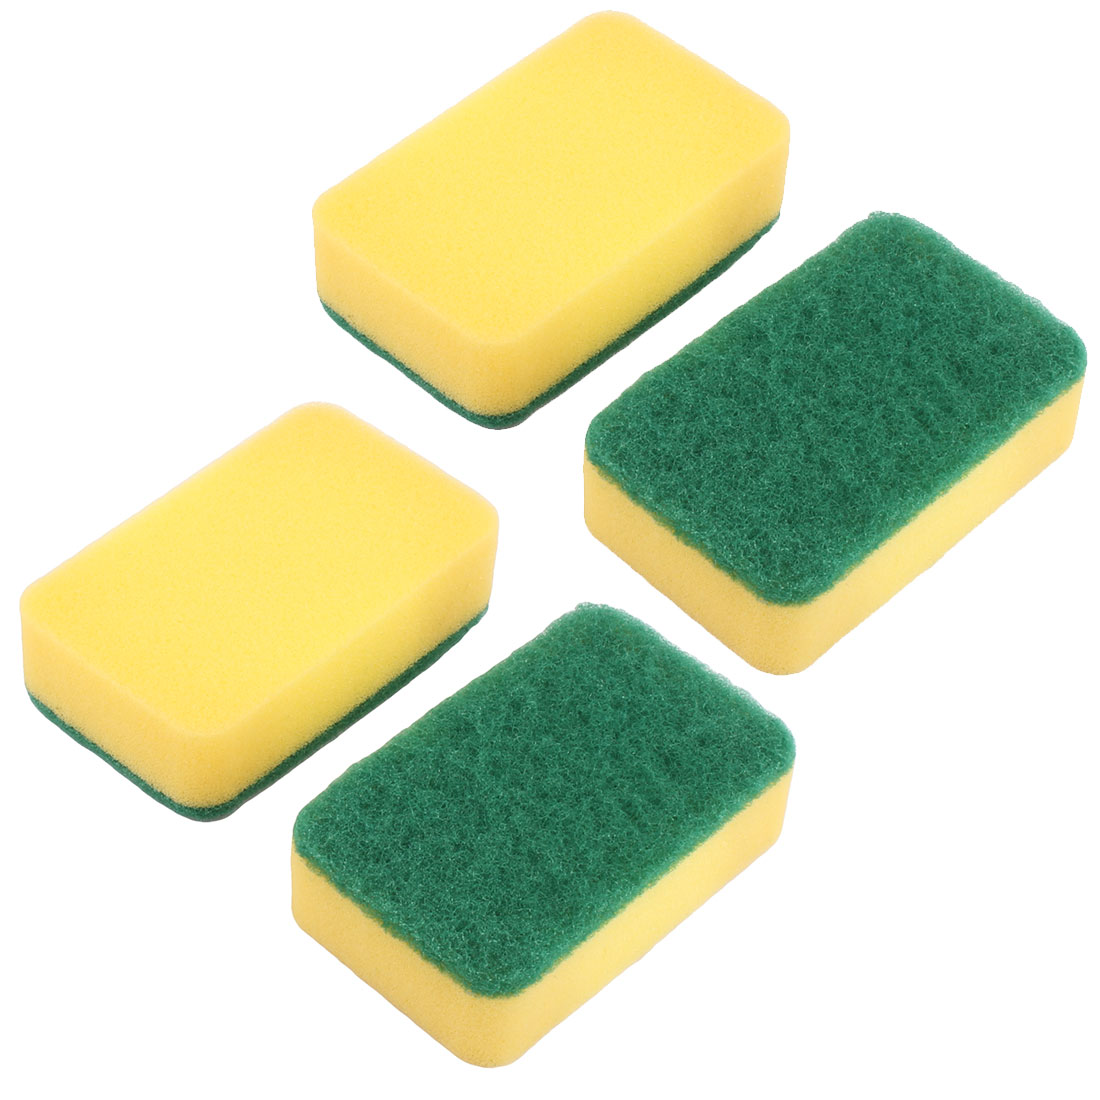 Household Kitchenware Sponge Bowl Pot Dish Wash Cleaning Scrub Pad 4 Pcs